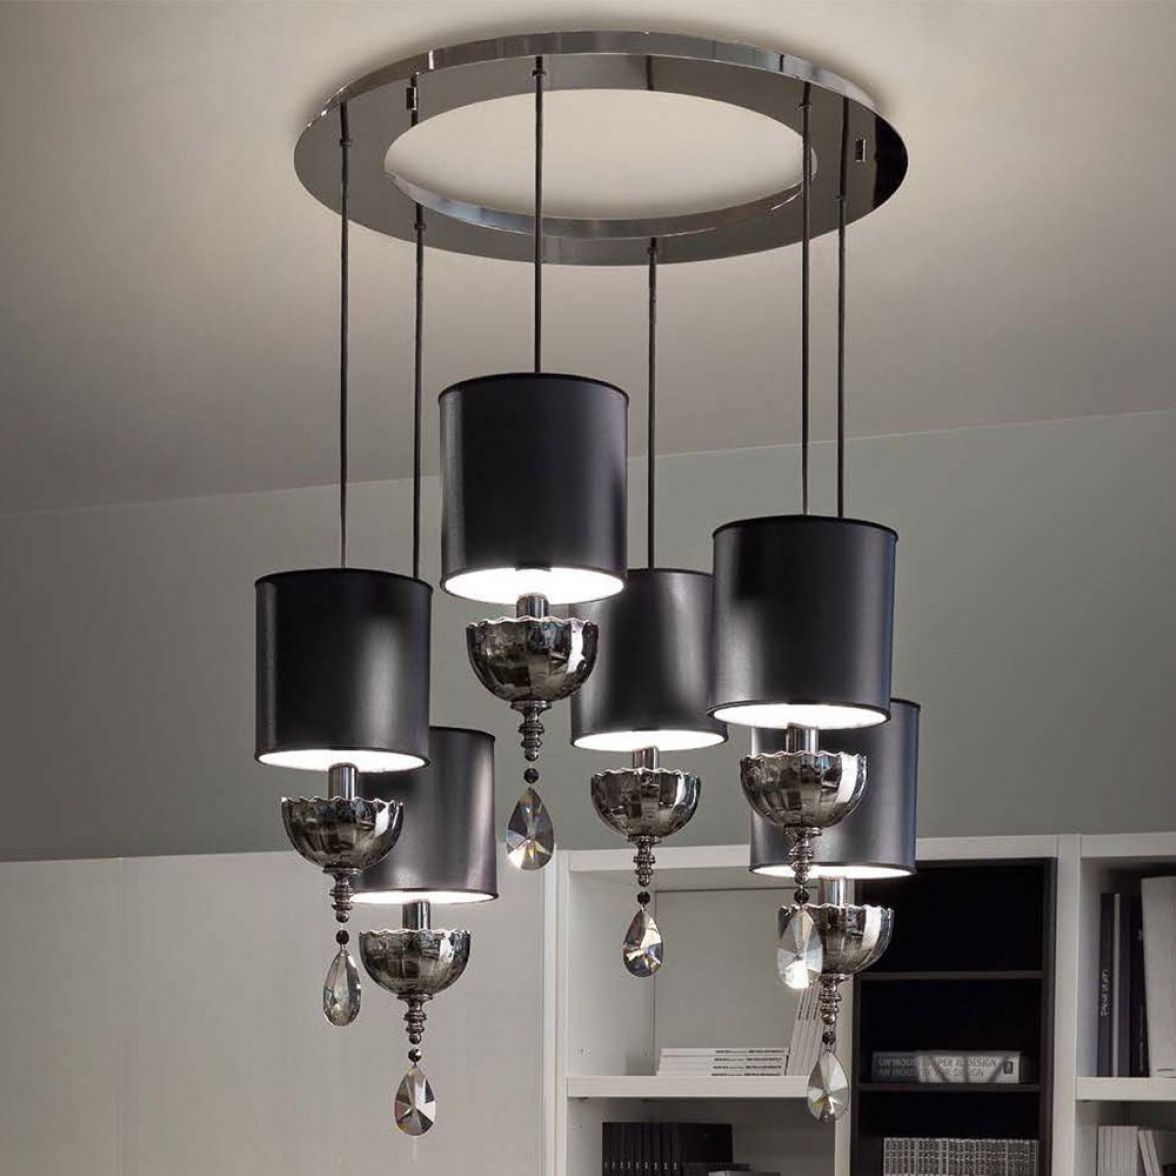 Nuare pendant light